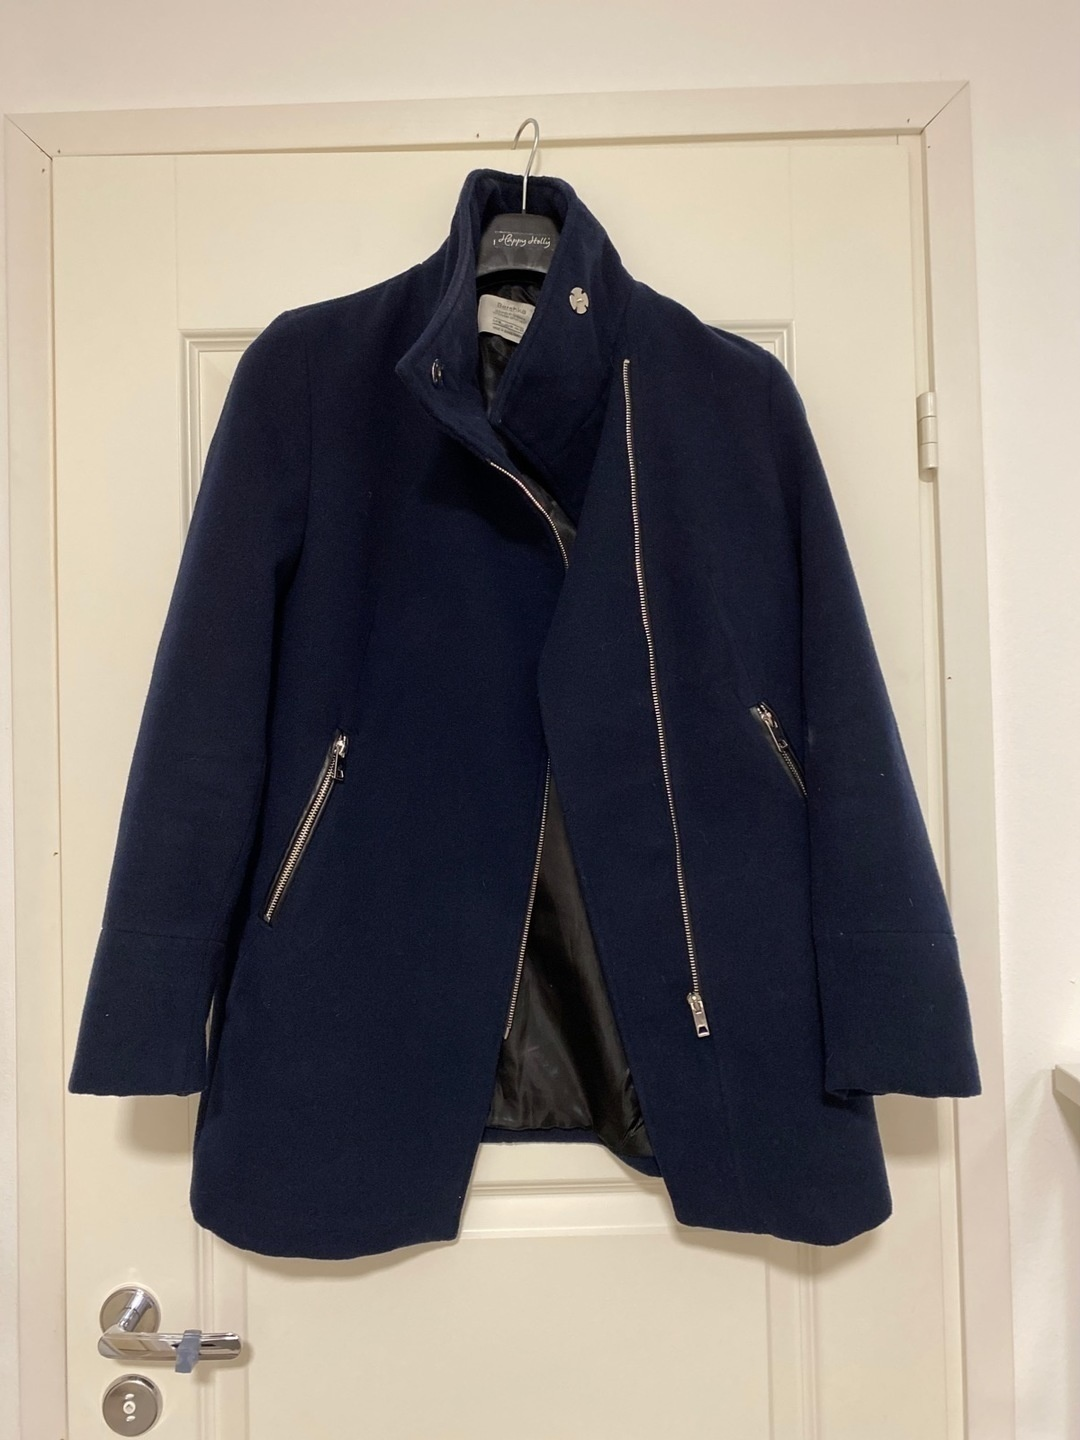 Women's coats & jackets - BERSHKA photo 1